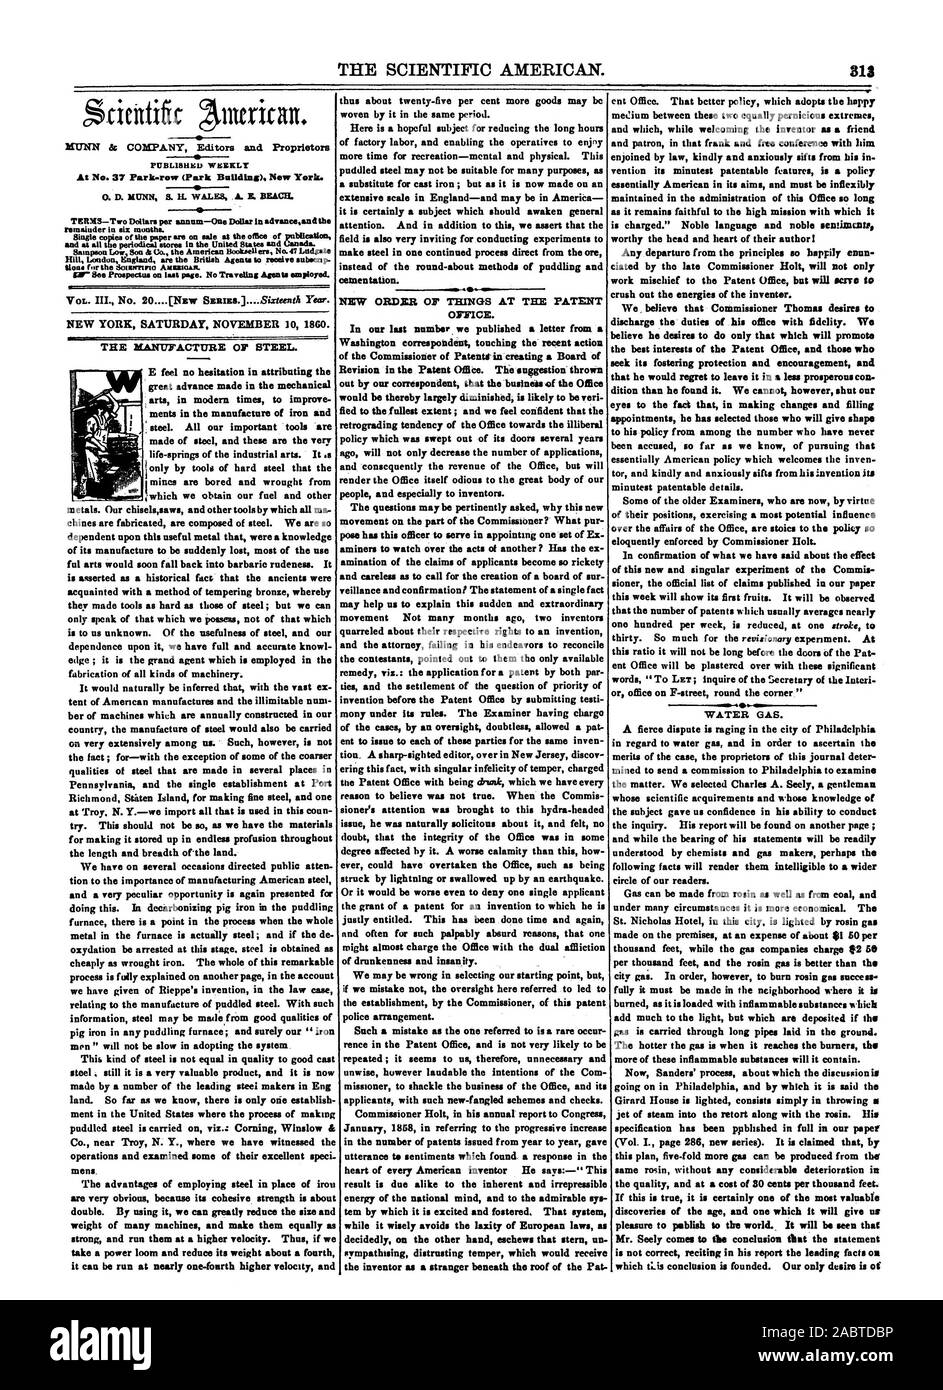 this plan five-fold more gas can be produced from the' same rosin without any considerable deterioration in If this is true it is certainly one of the most valuable discoveries of the age and one which it will give us Mr. Seely comes to the conclusion that the statement is not correct reciting in his report the leading facts on, scientific american, 1860-11-10 Stock Photo